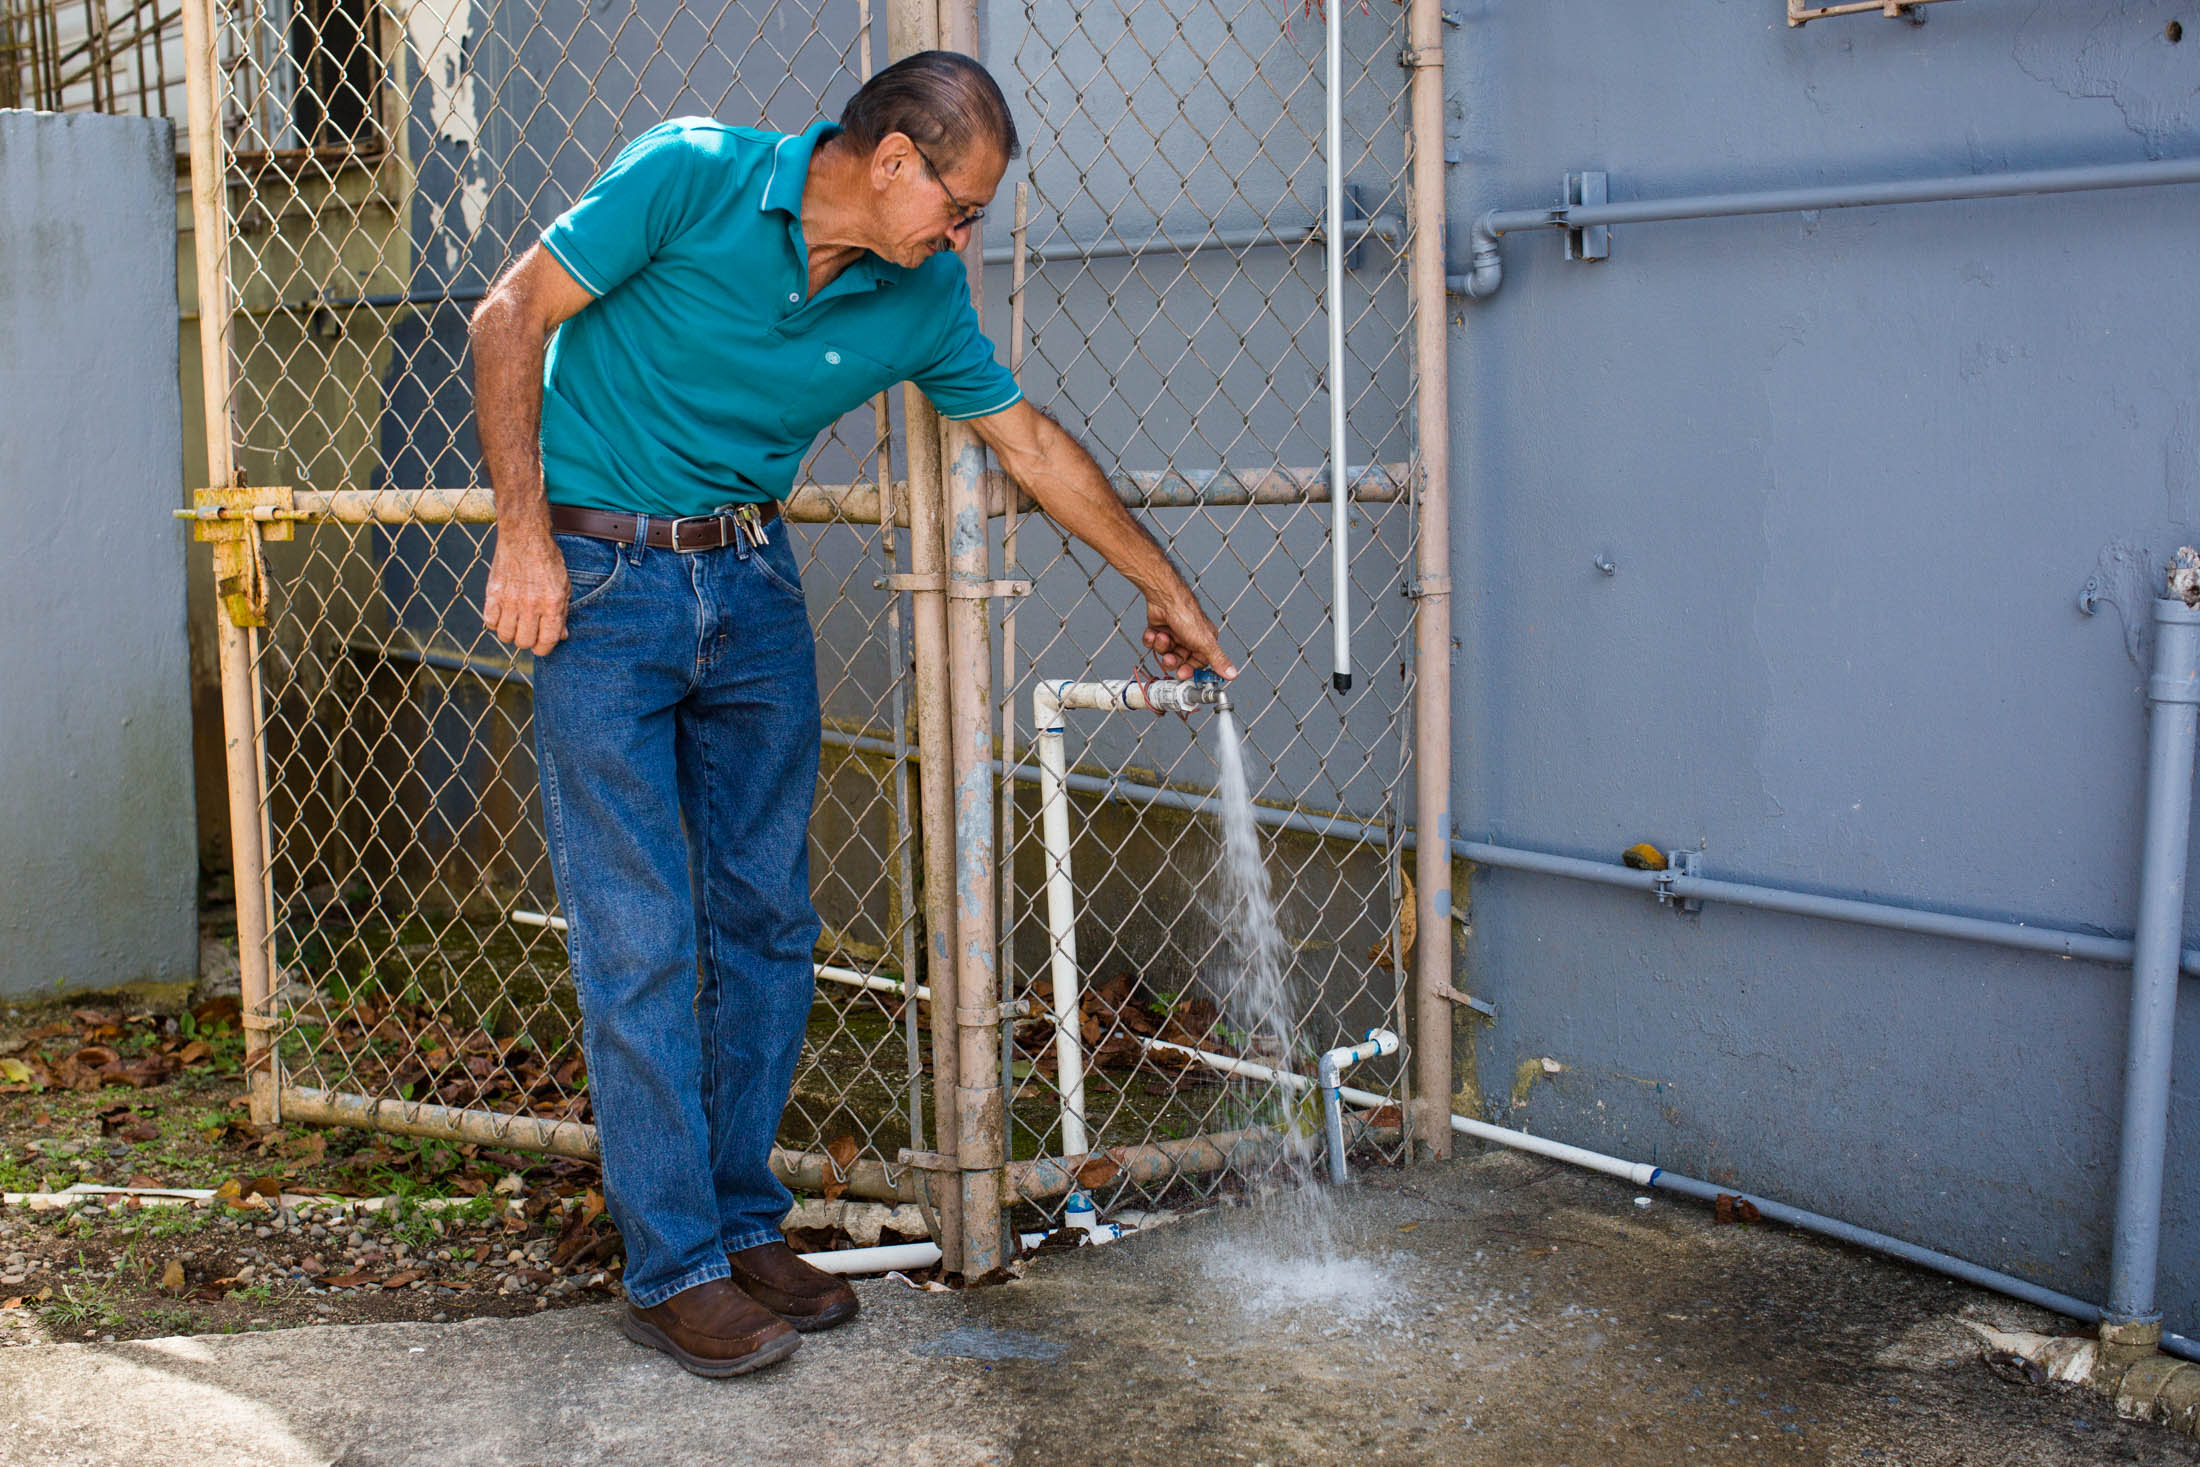 Miguel Morales, president of the community nonprofit Acción Comunitaria del Viví, Inc., checks the water pressure in the building before solar laundry services open in Barrio Vivi Arriba, Utuado, Puerto Rico, on May 26, 2018. Inside a former public school, the group, funded by Direct Relief, opened a free laundry service for the two nearby communities who have been without power for over eight months. The group, coordinated by Miguel Morales, serves as a community and aid center in the aftermath of Hurricane Maria. Many of the residents of the mountainous area are elderly and underprivileged. (Photo by Erika P. Rodríguez for Direct Relief)